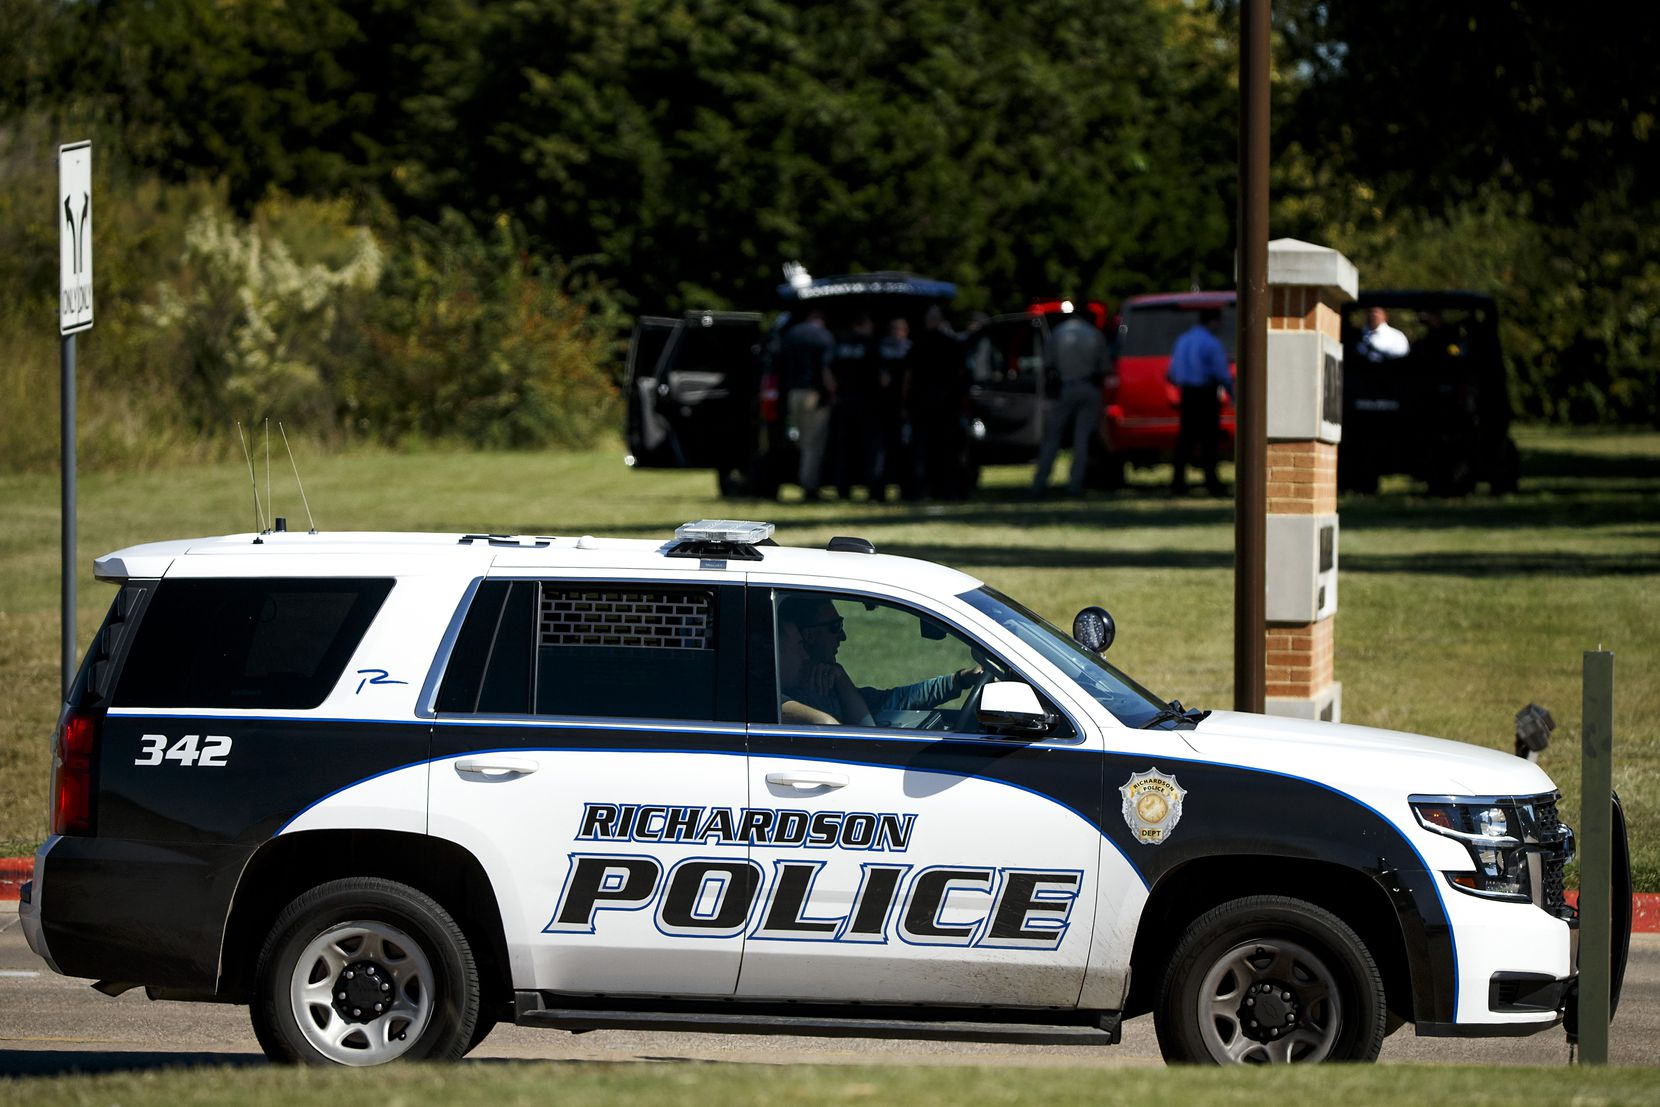 Richardson police face an investigation into whether they run an illegal ticket quota system.